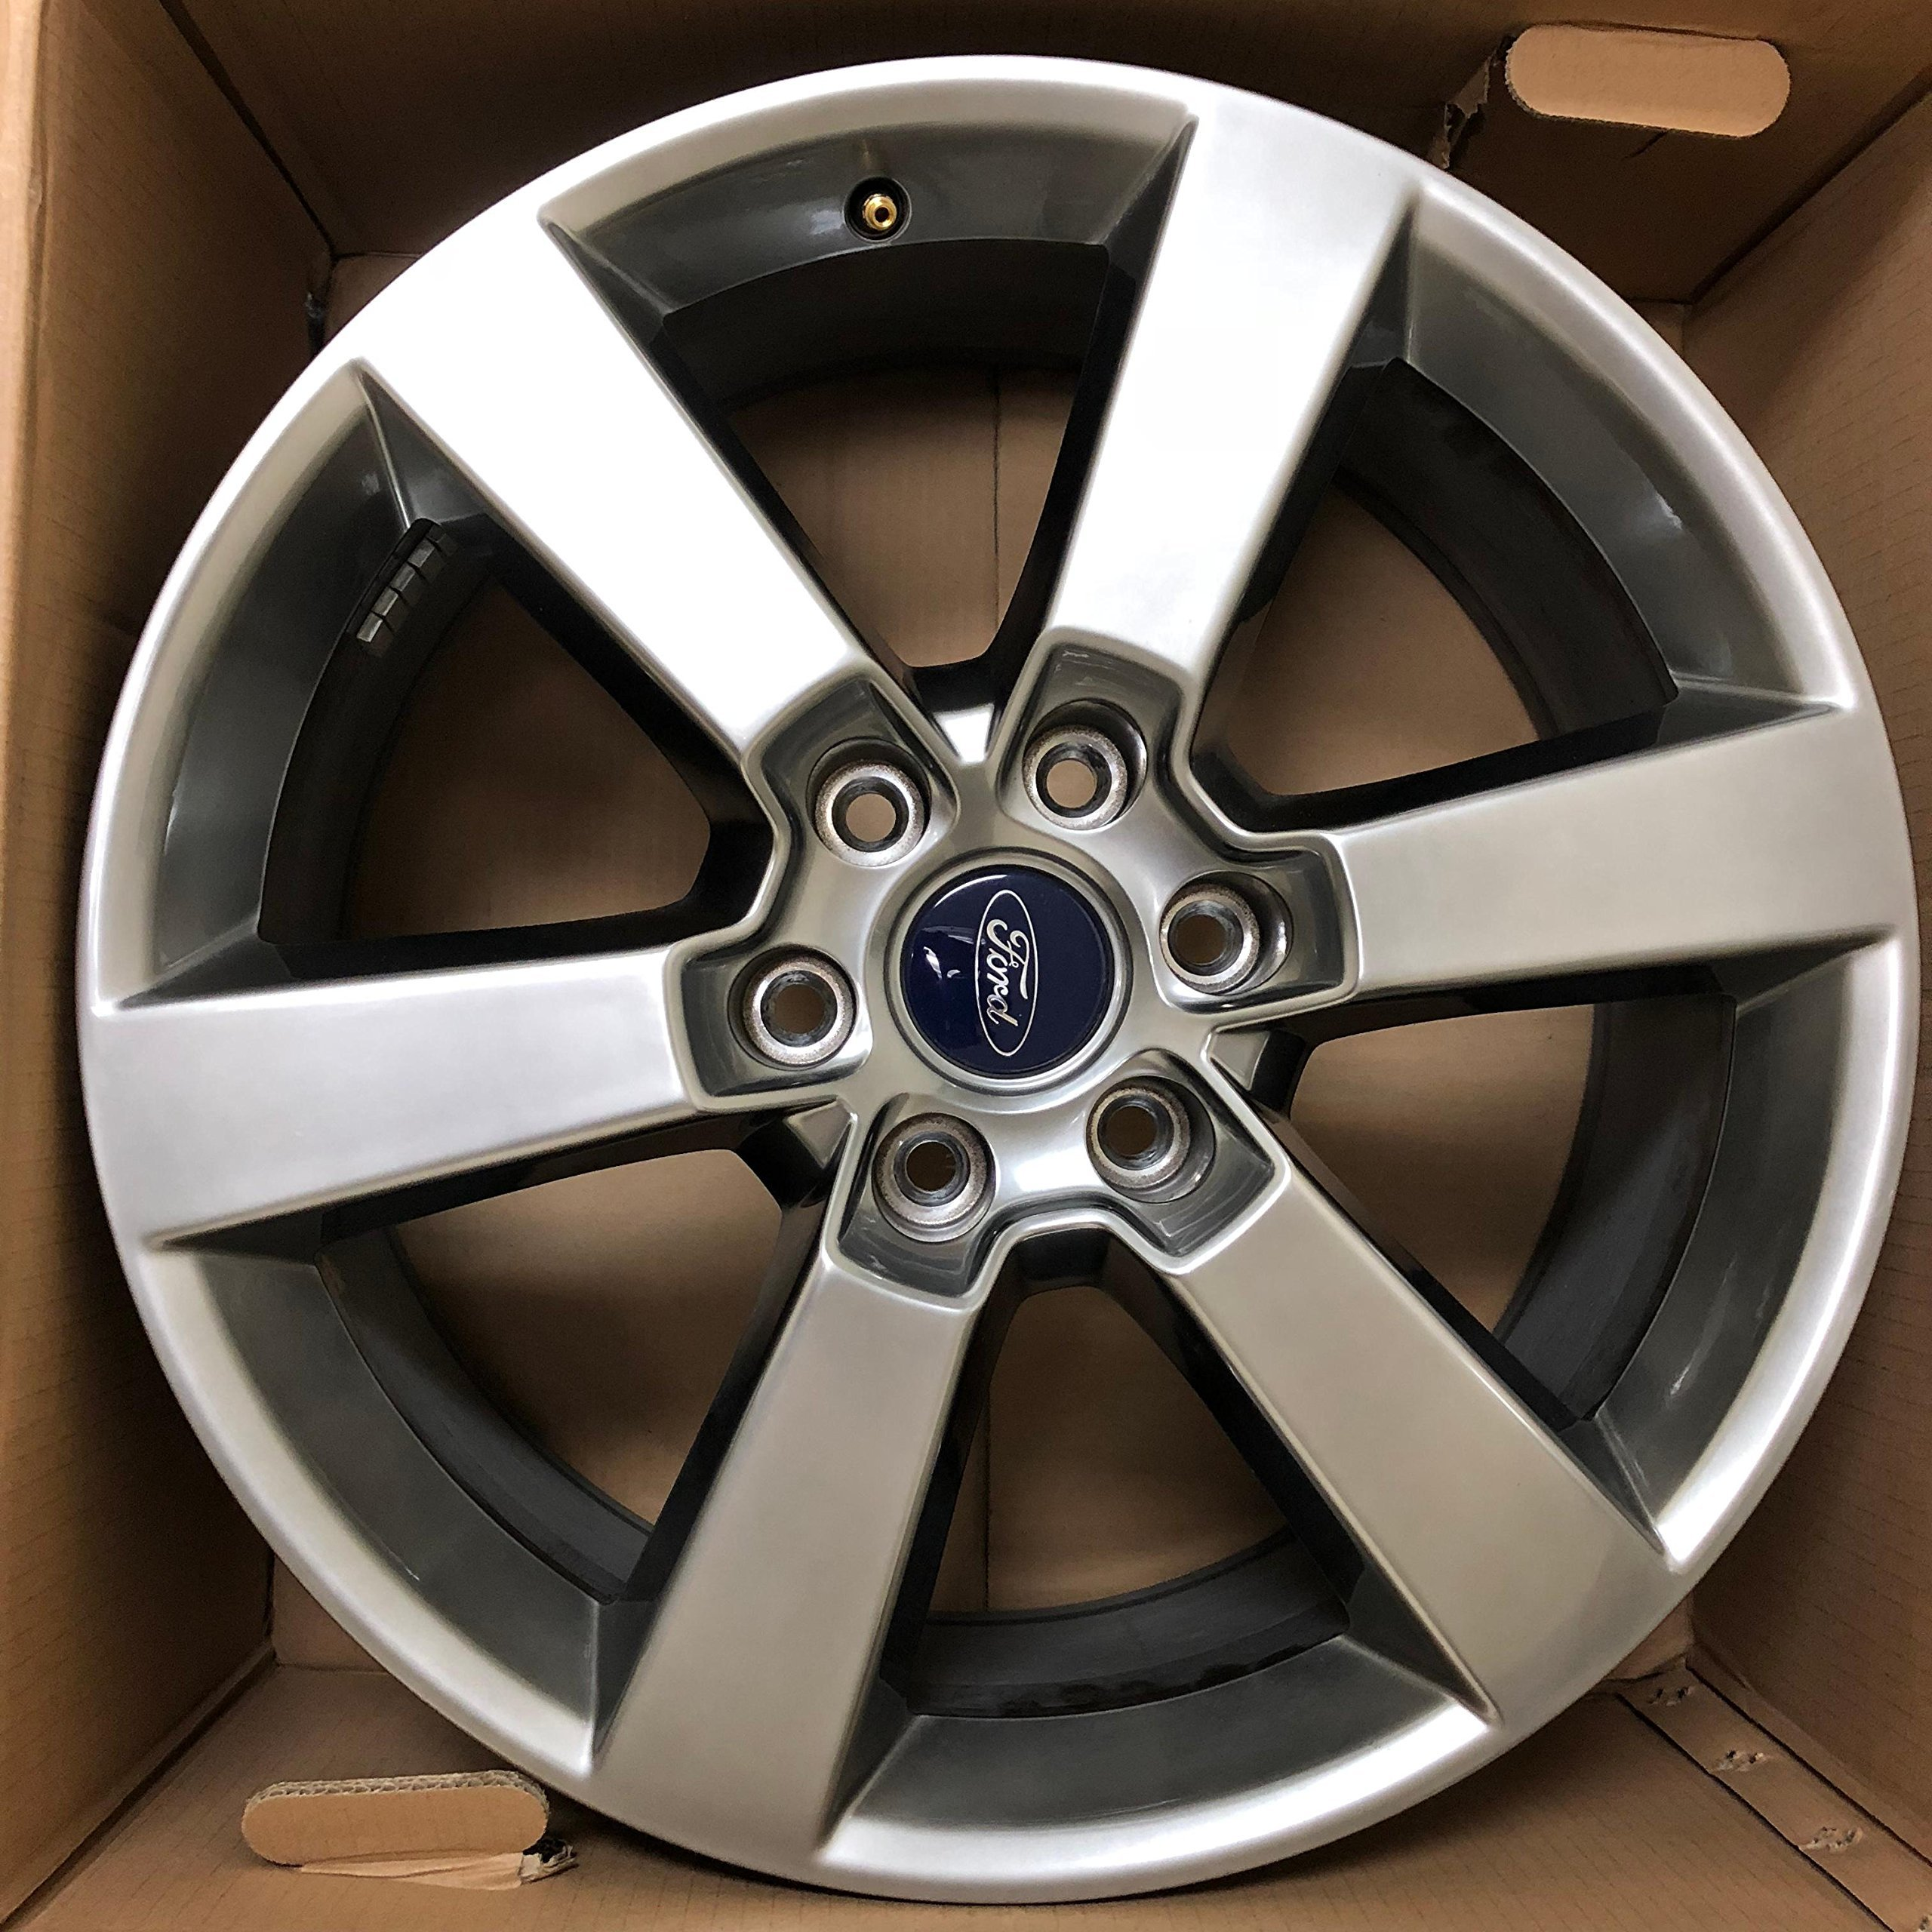 Ford F150 Factory Rims For Sale >> Galleon 20 Inch 2015 2016 2017 Ford F150 Hyper Charcoal